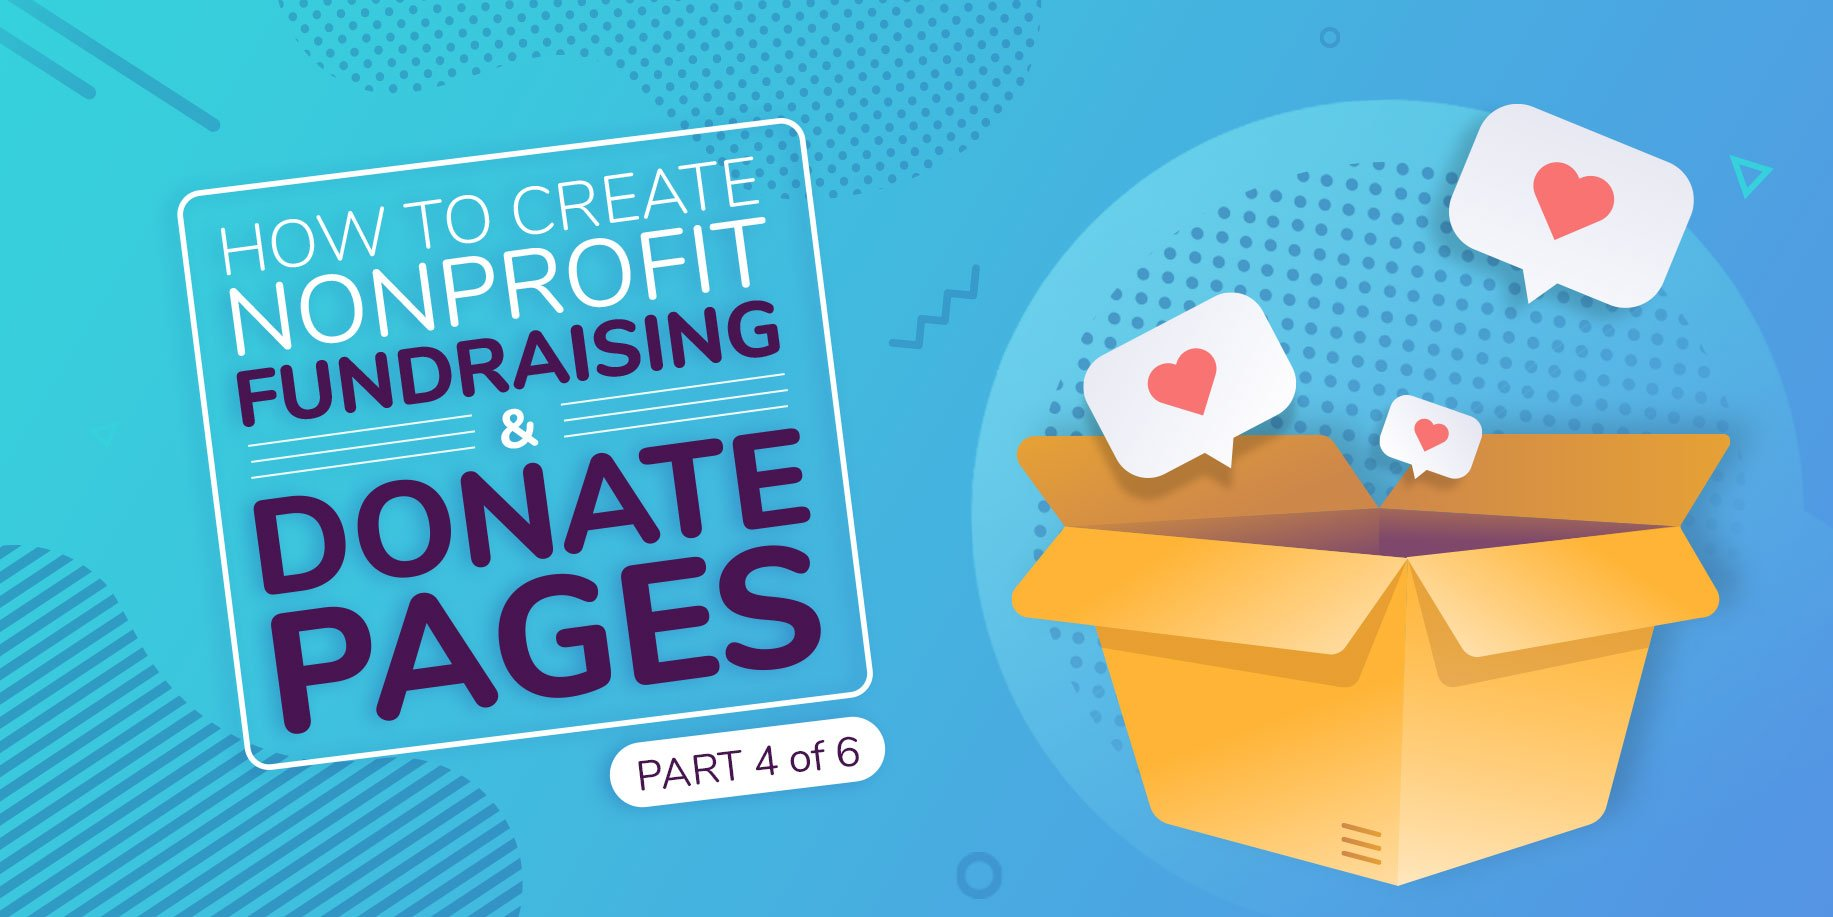 How to Create Nonprofit Website Fundraising and Donate Pages